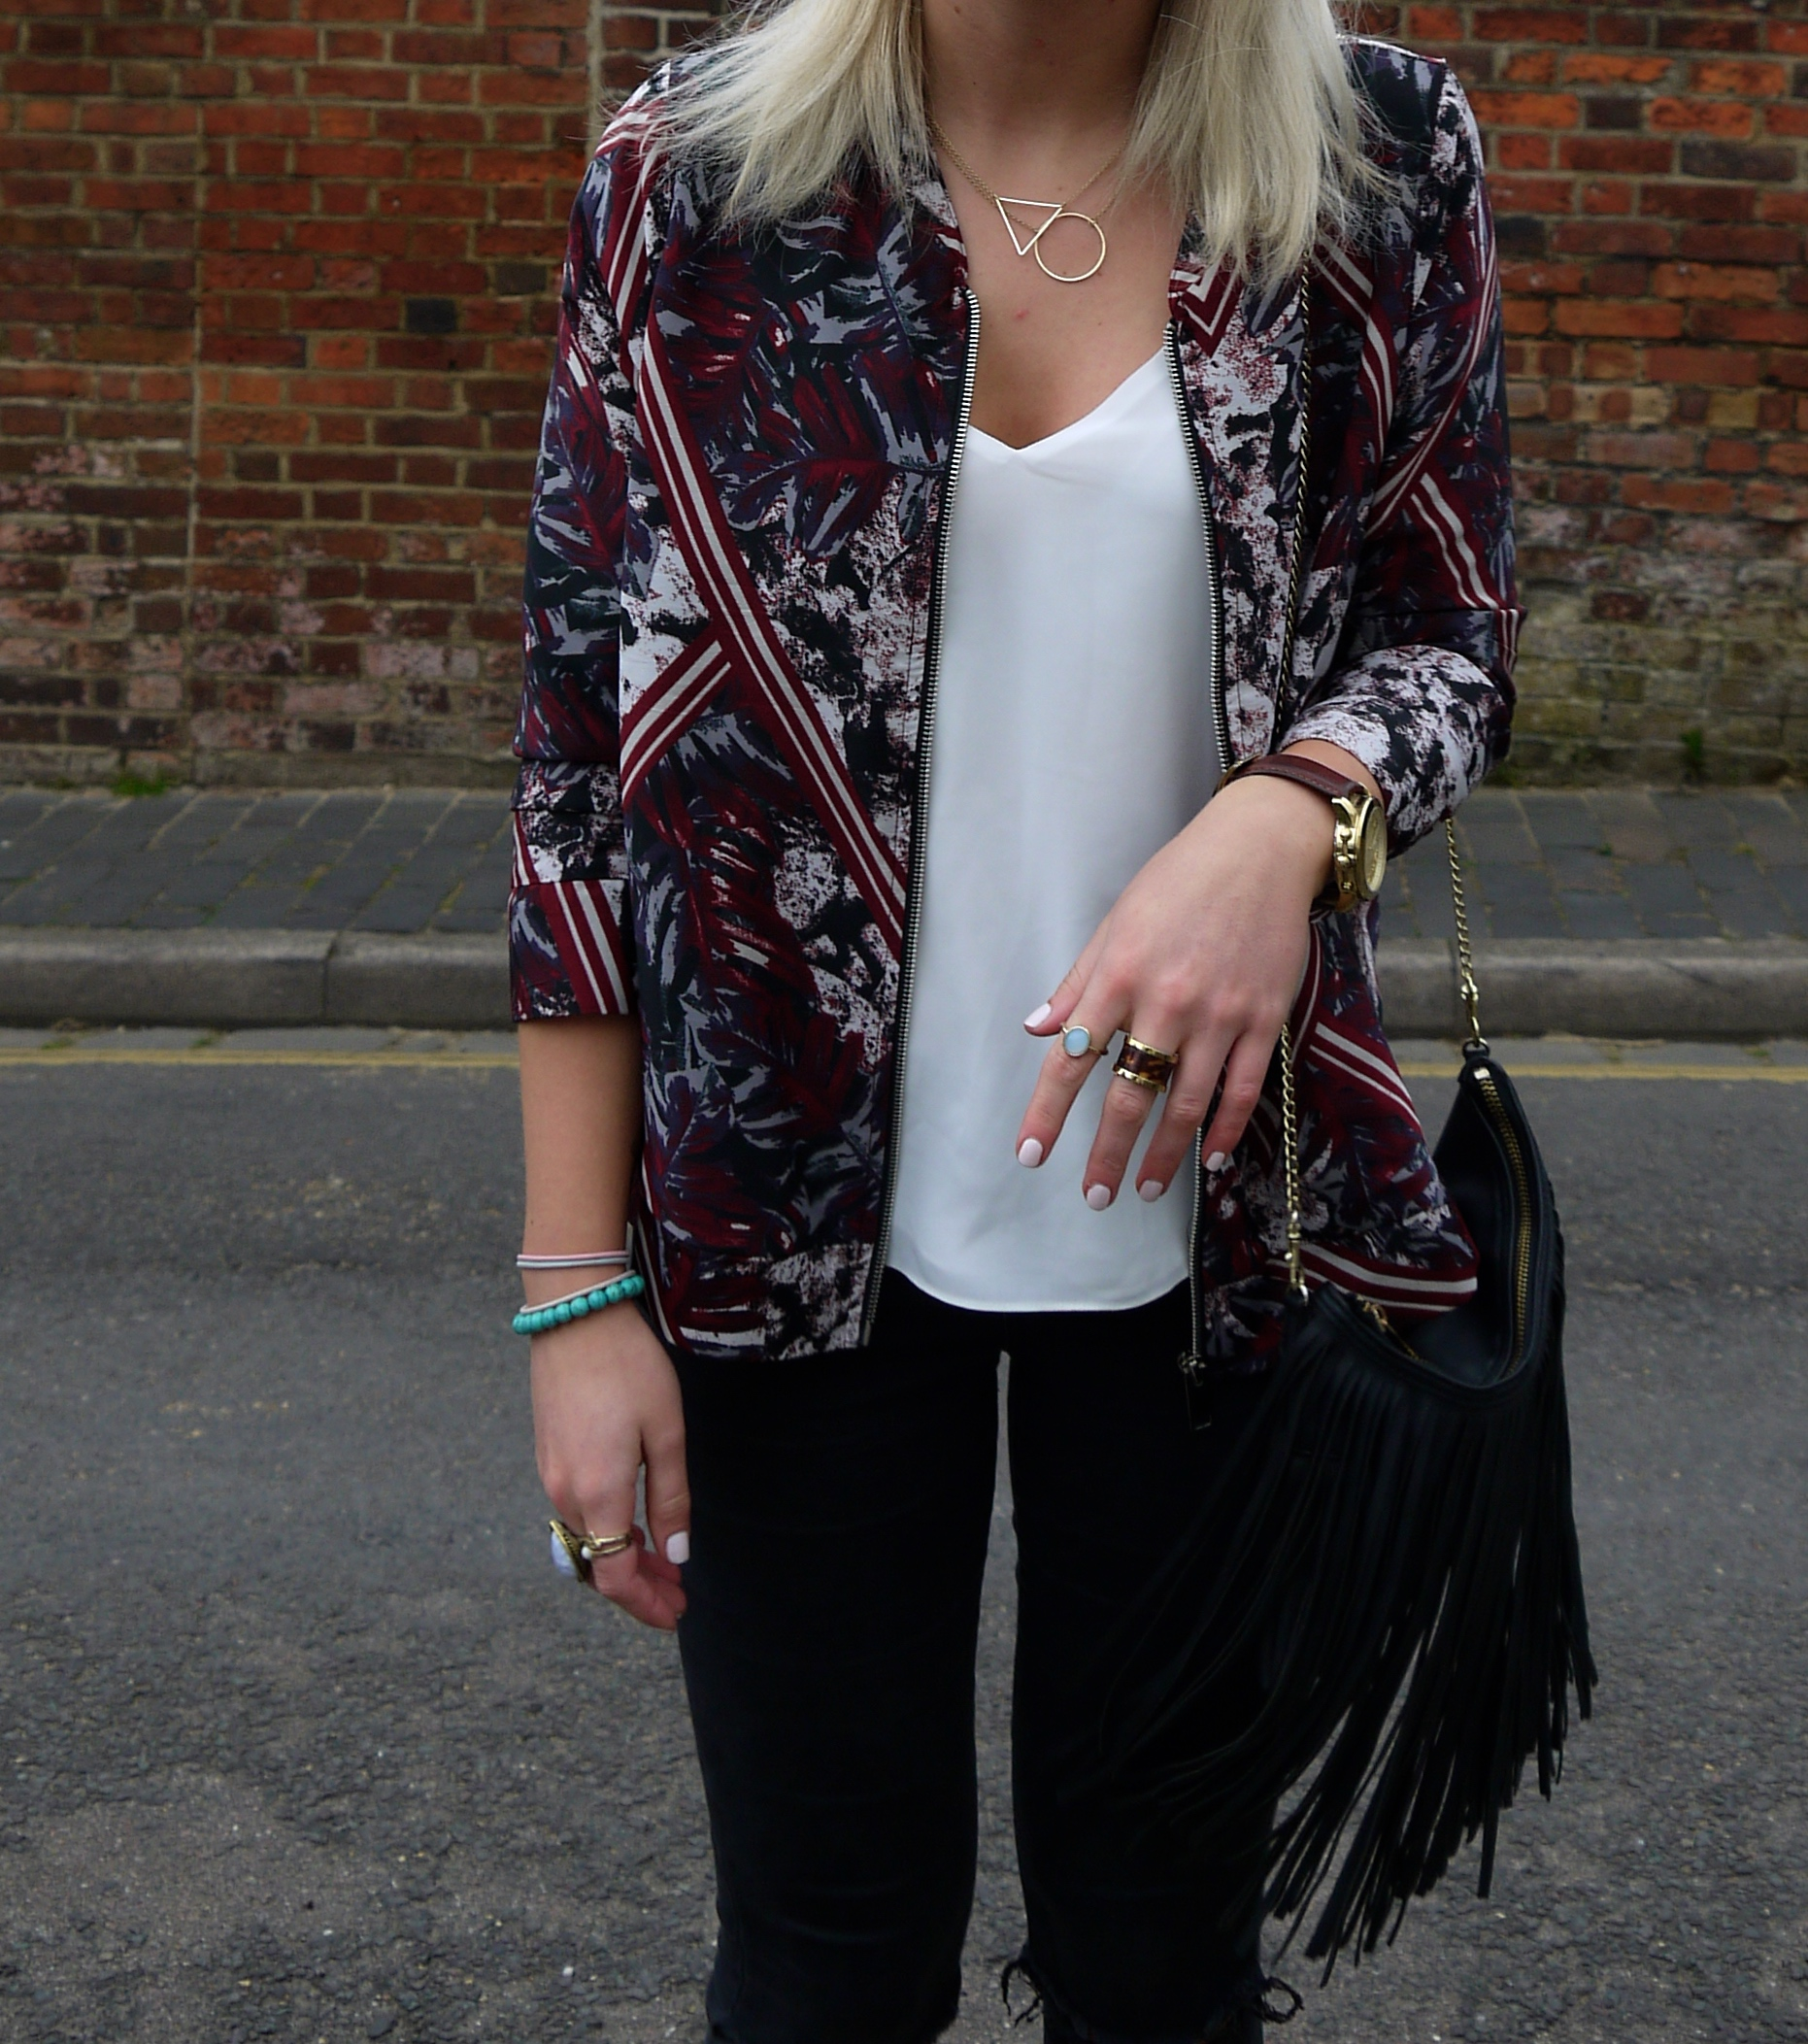 RED CREPE LEAF PRINT BOMBER JACKET, WHITE TOPSHOP CAMI, BLACK TASSLE BAG, Truffle Collection Ocean Chunky Lace Up Sandals